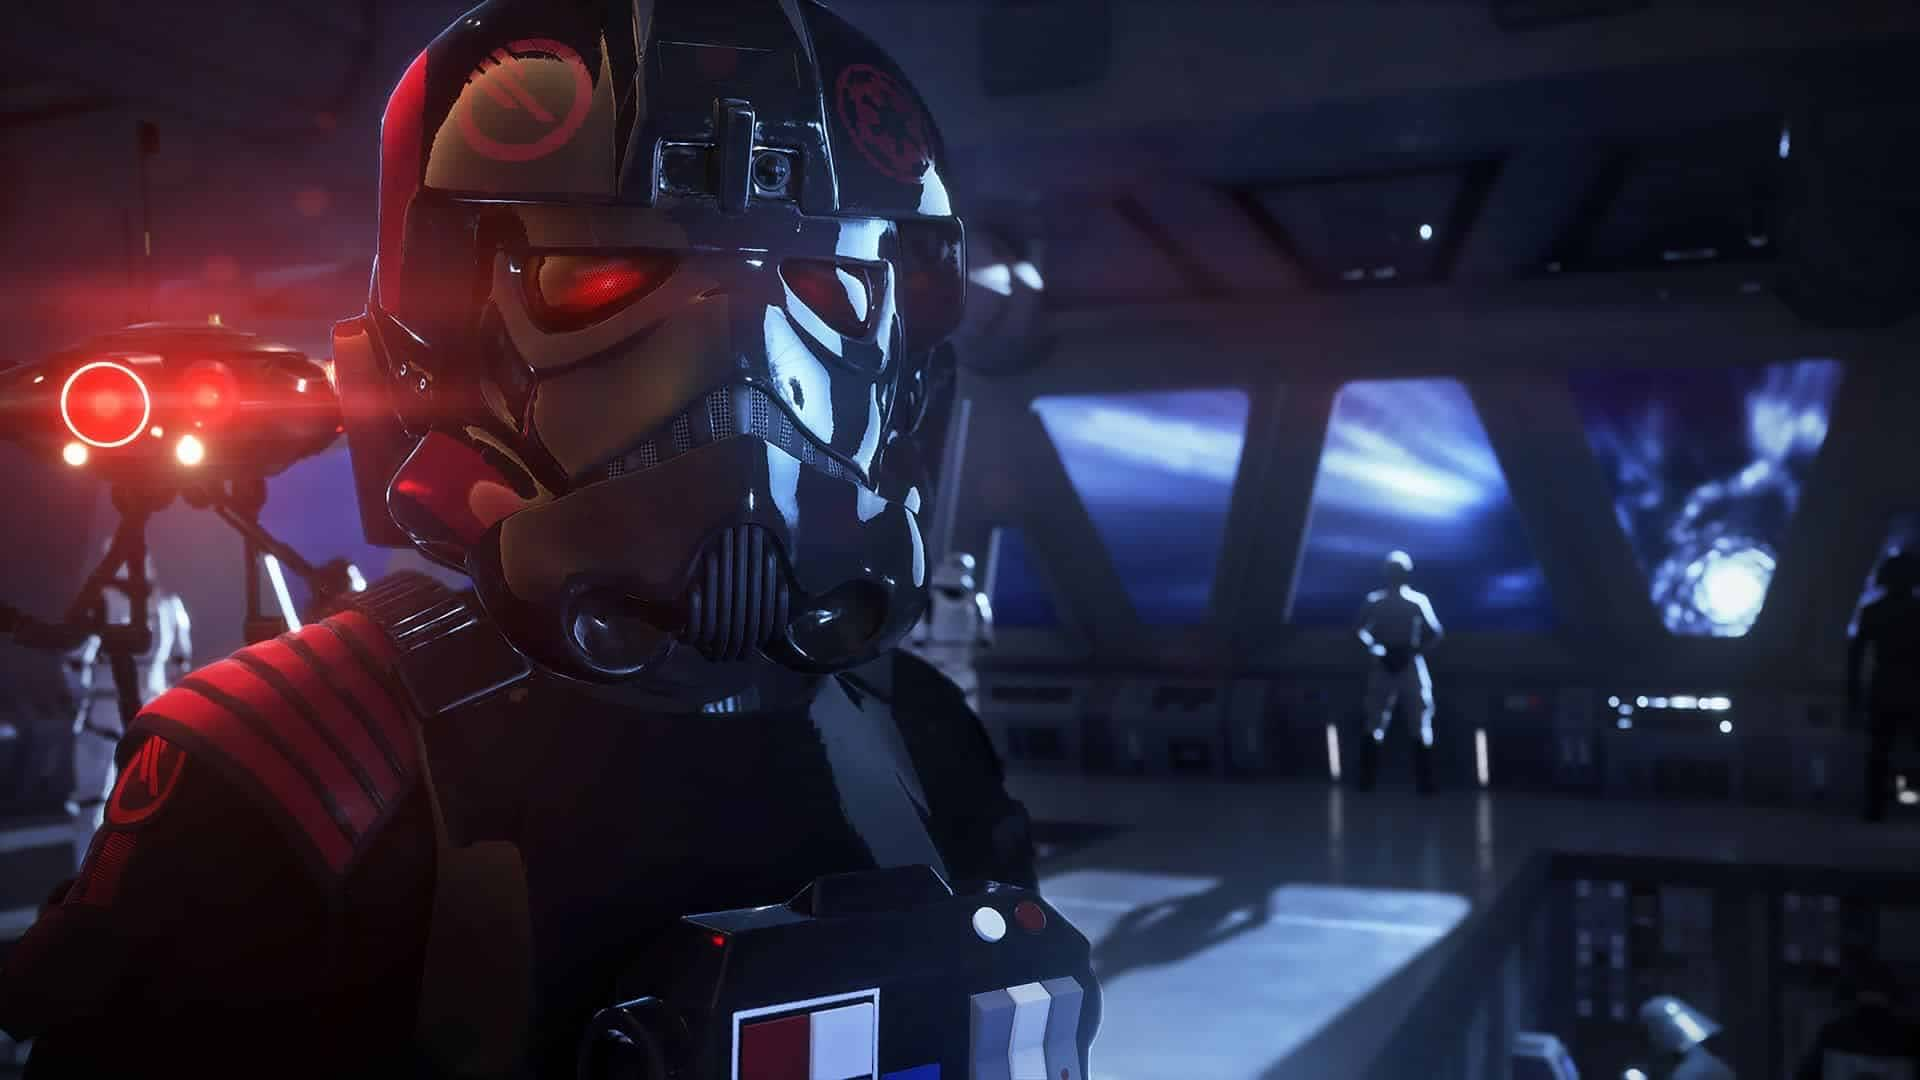 Star Wars Battlefront II's Celebration Edition is free on the Epic Games Store